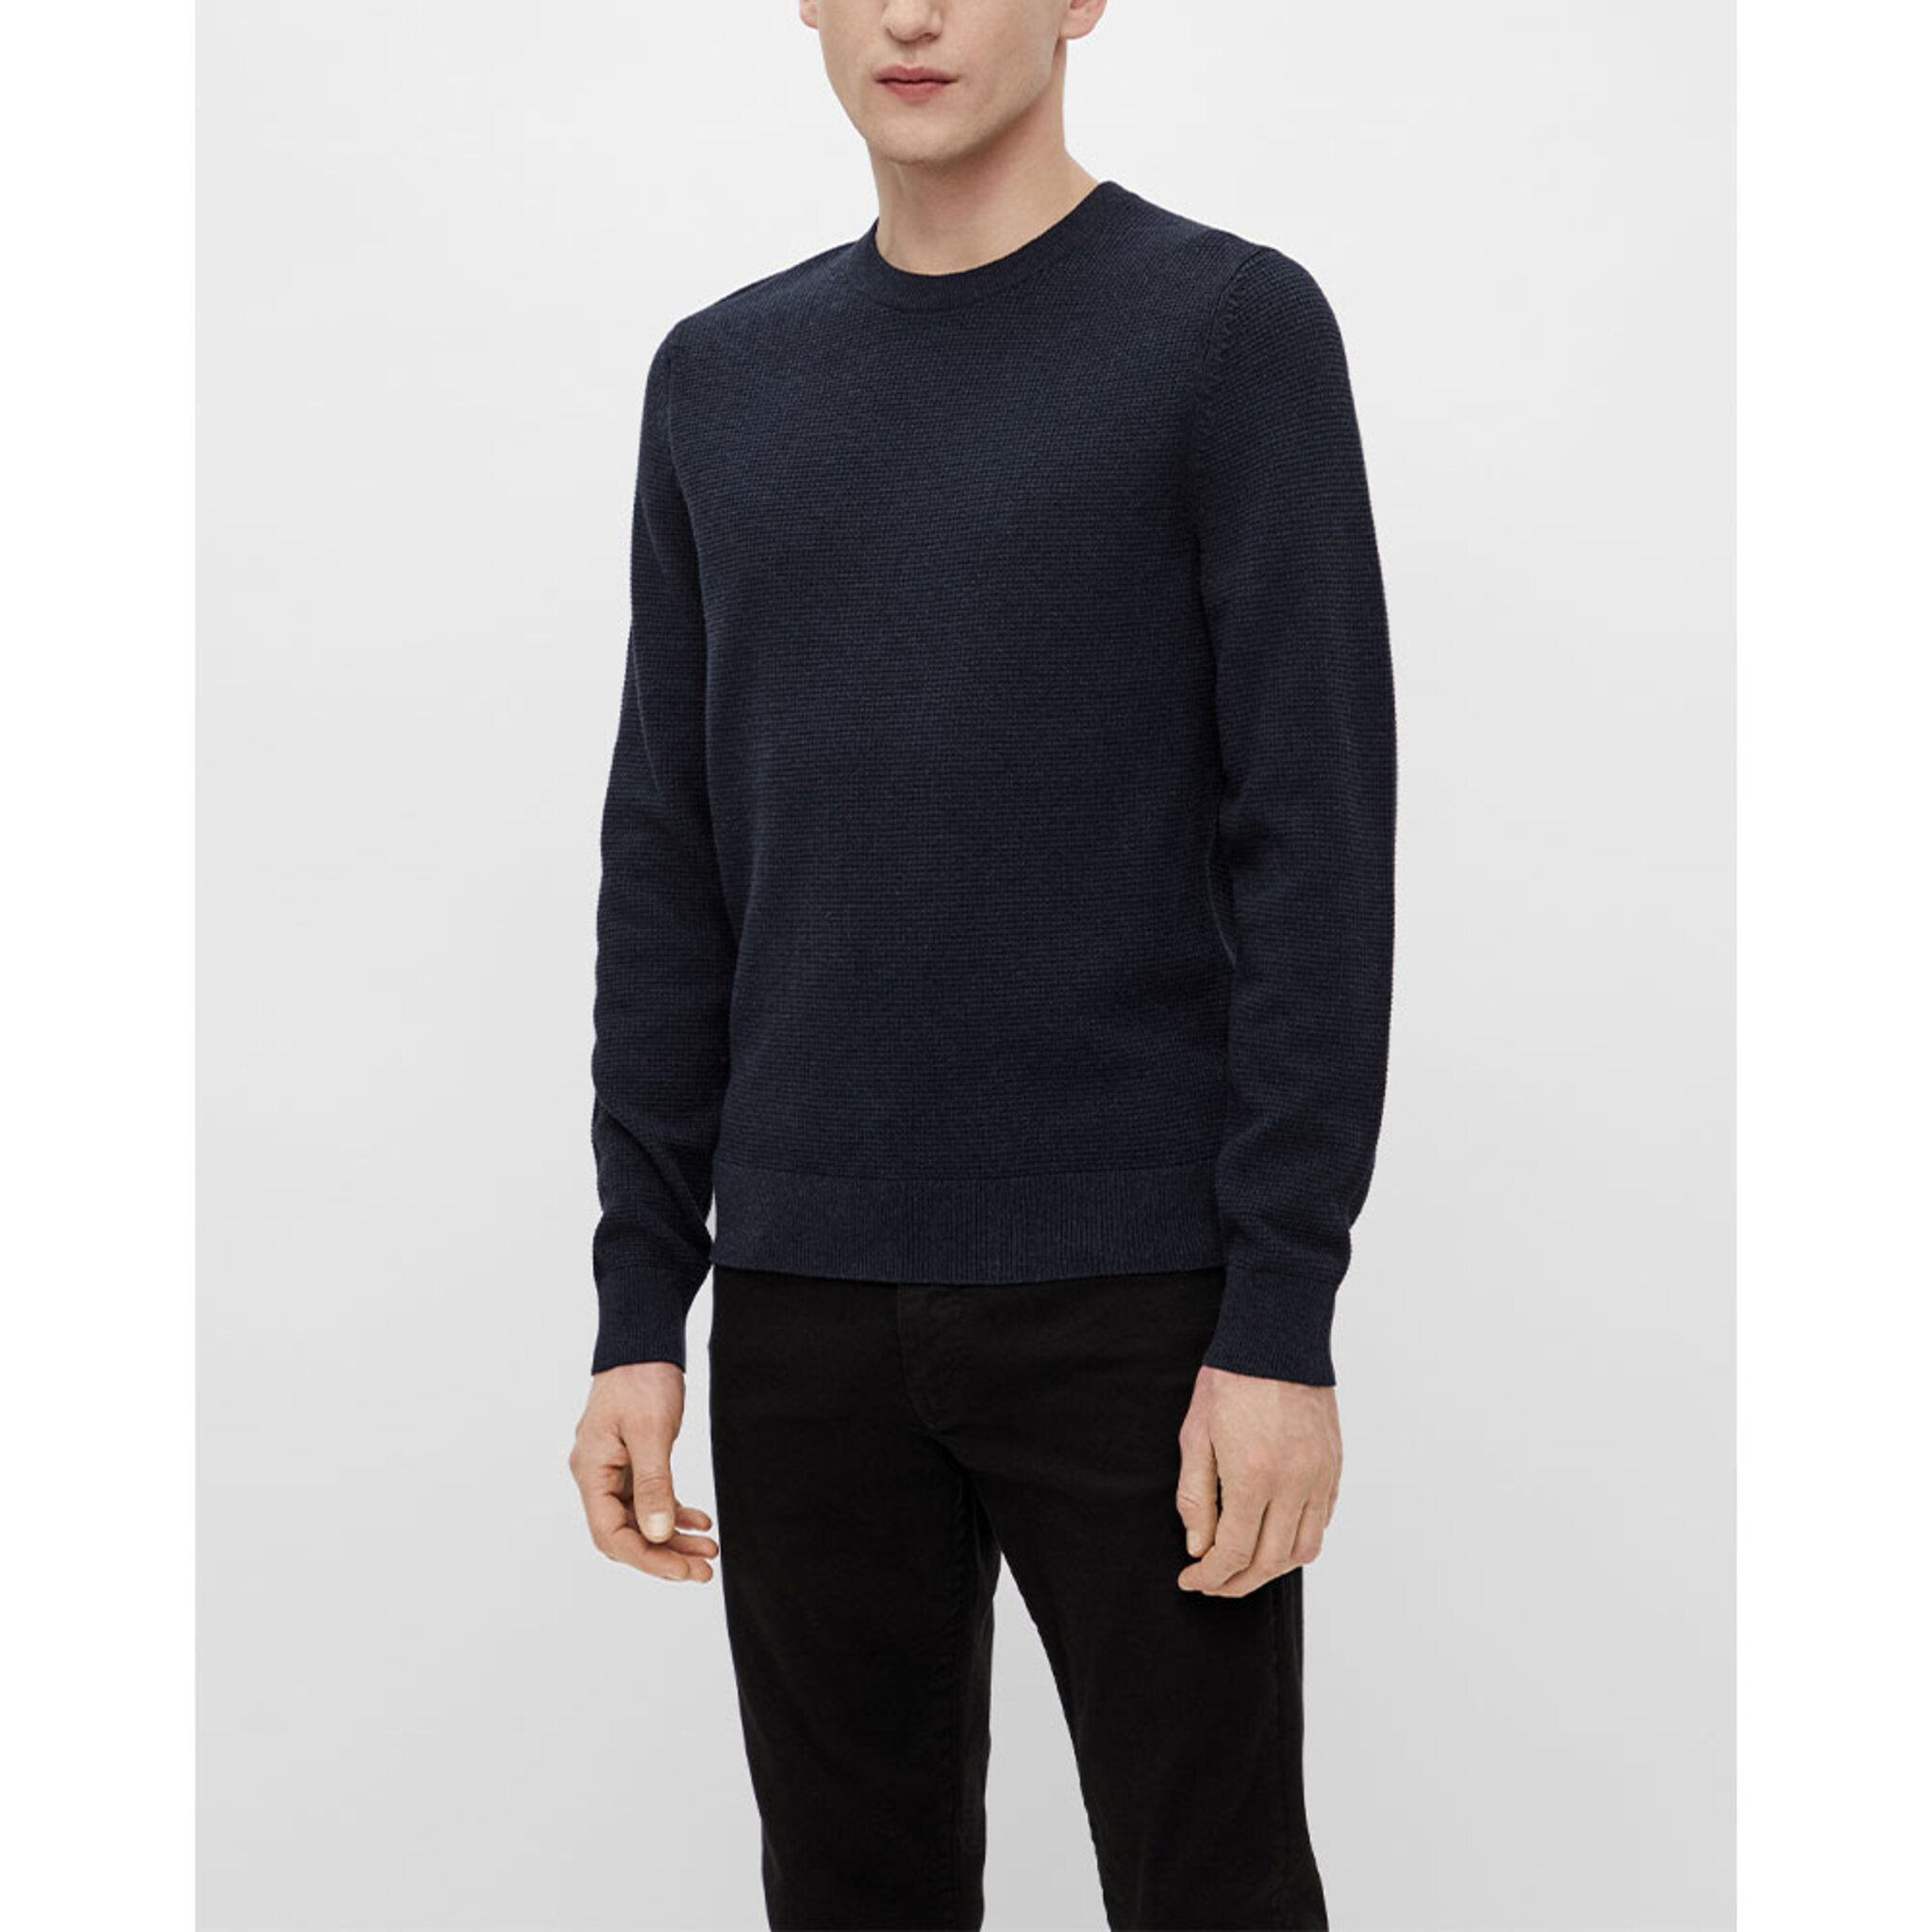 Andy Structure C-Neck Sweater